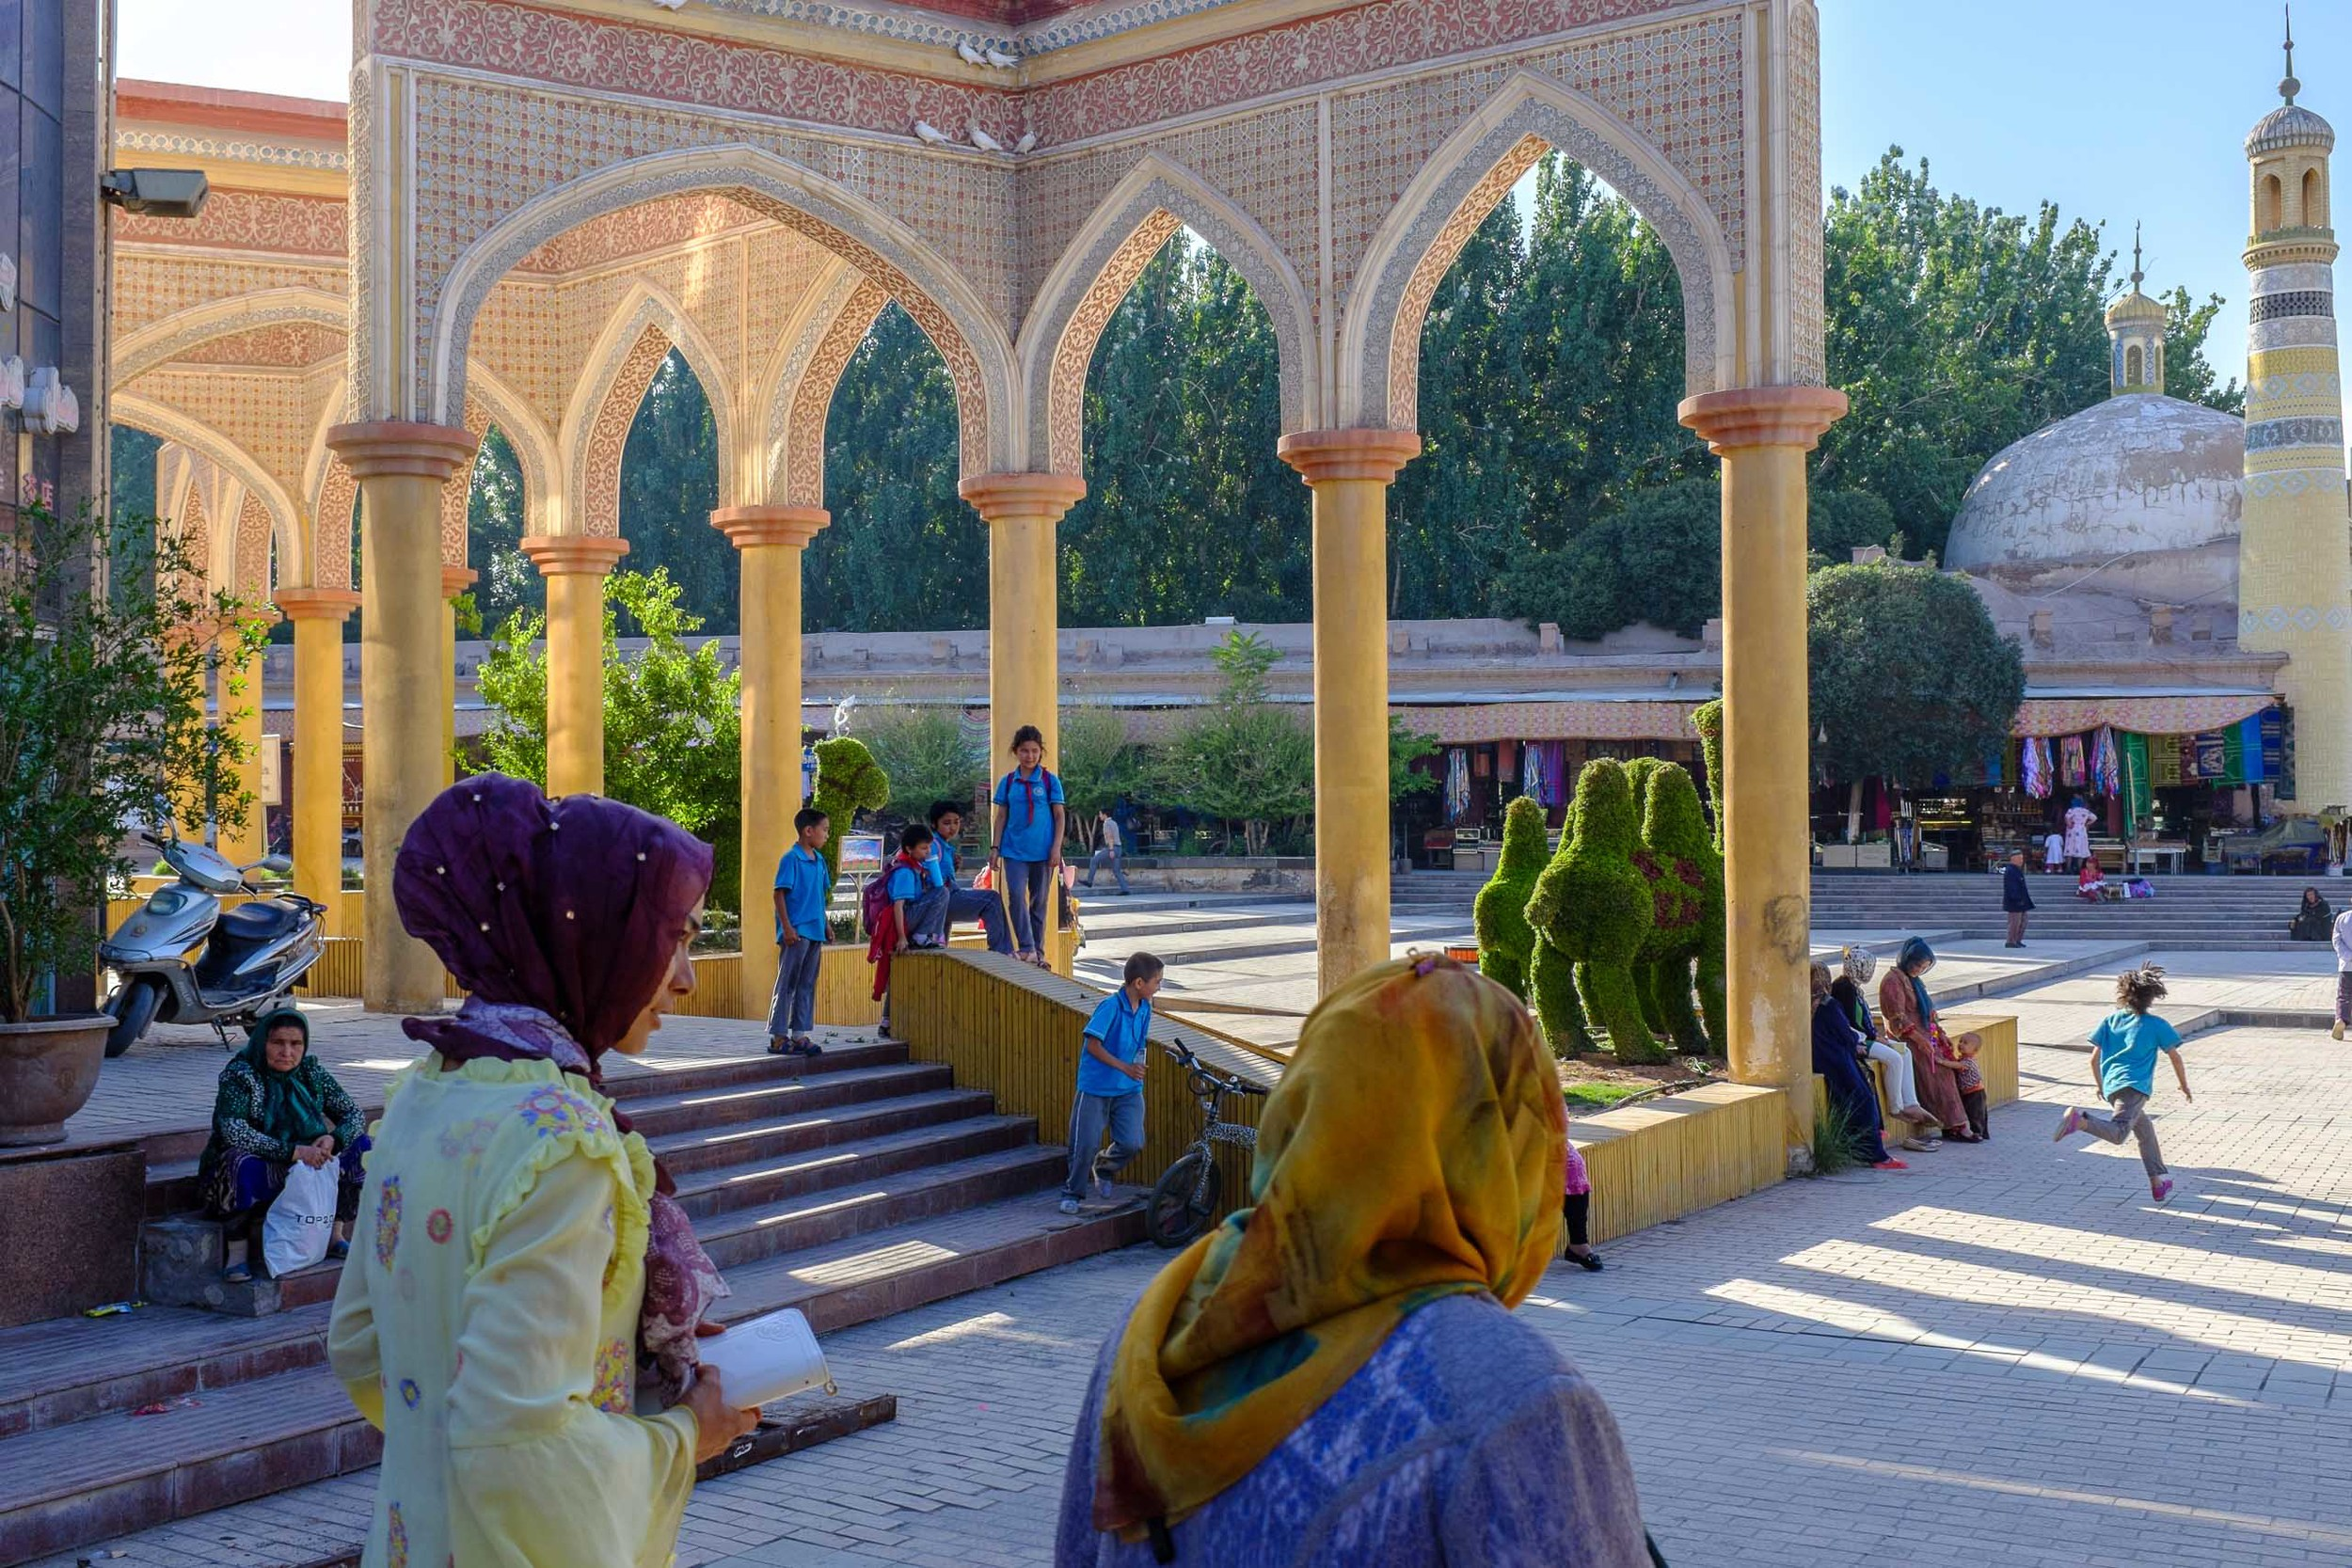 Locals gathering in the Id Kah Mosque square